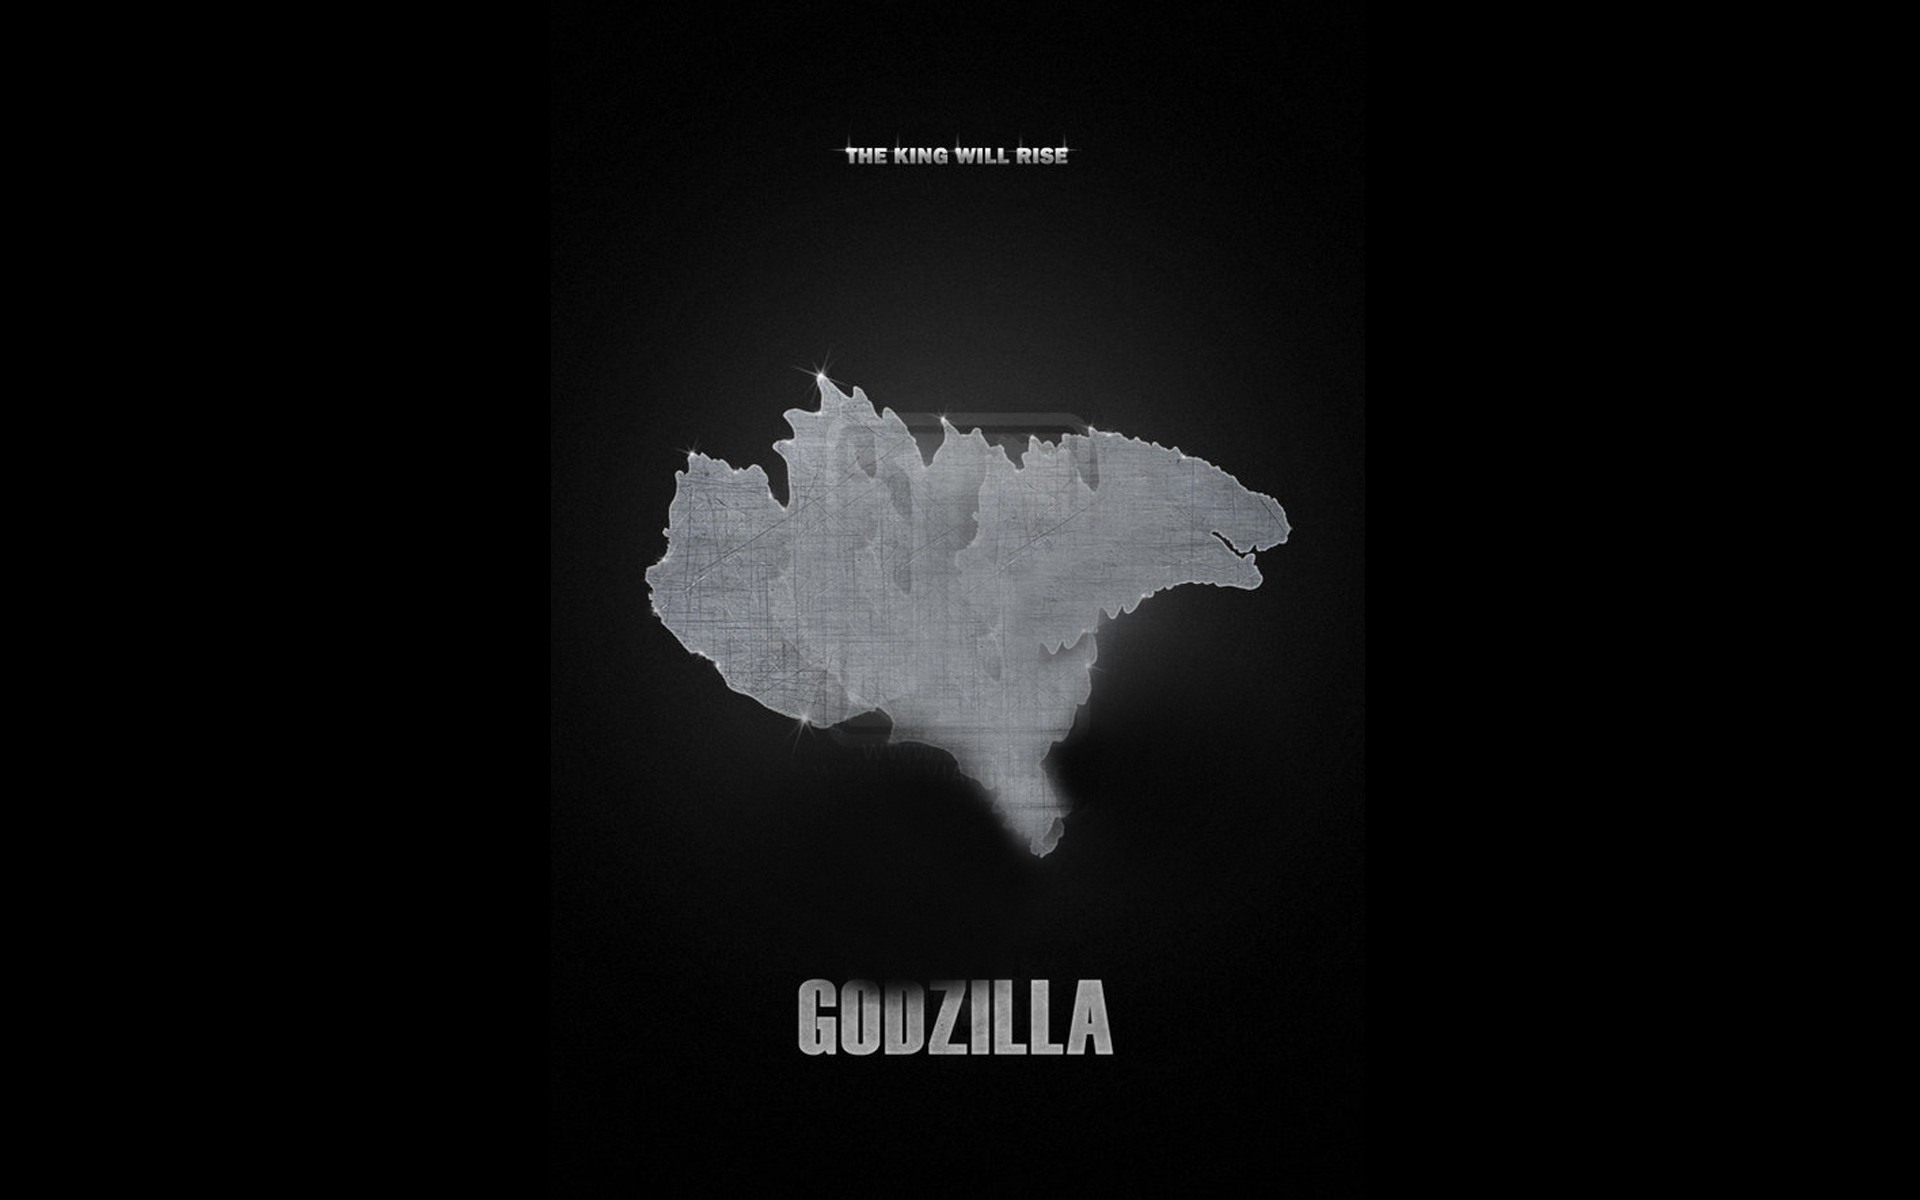 Godzilla-Movie-New-2014-Poster